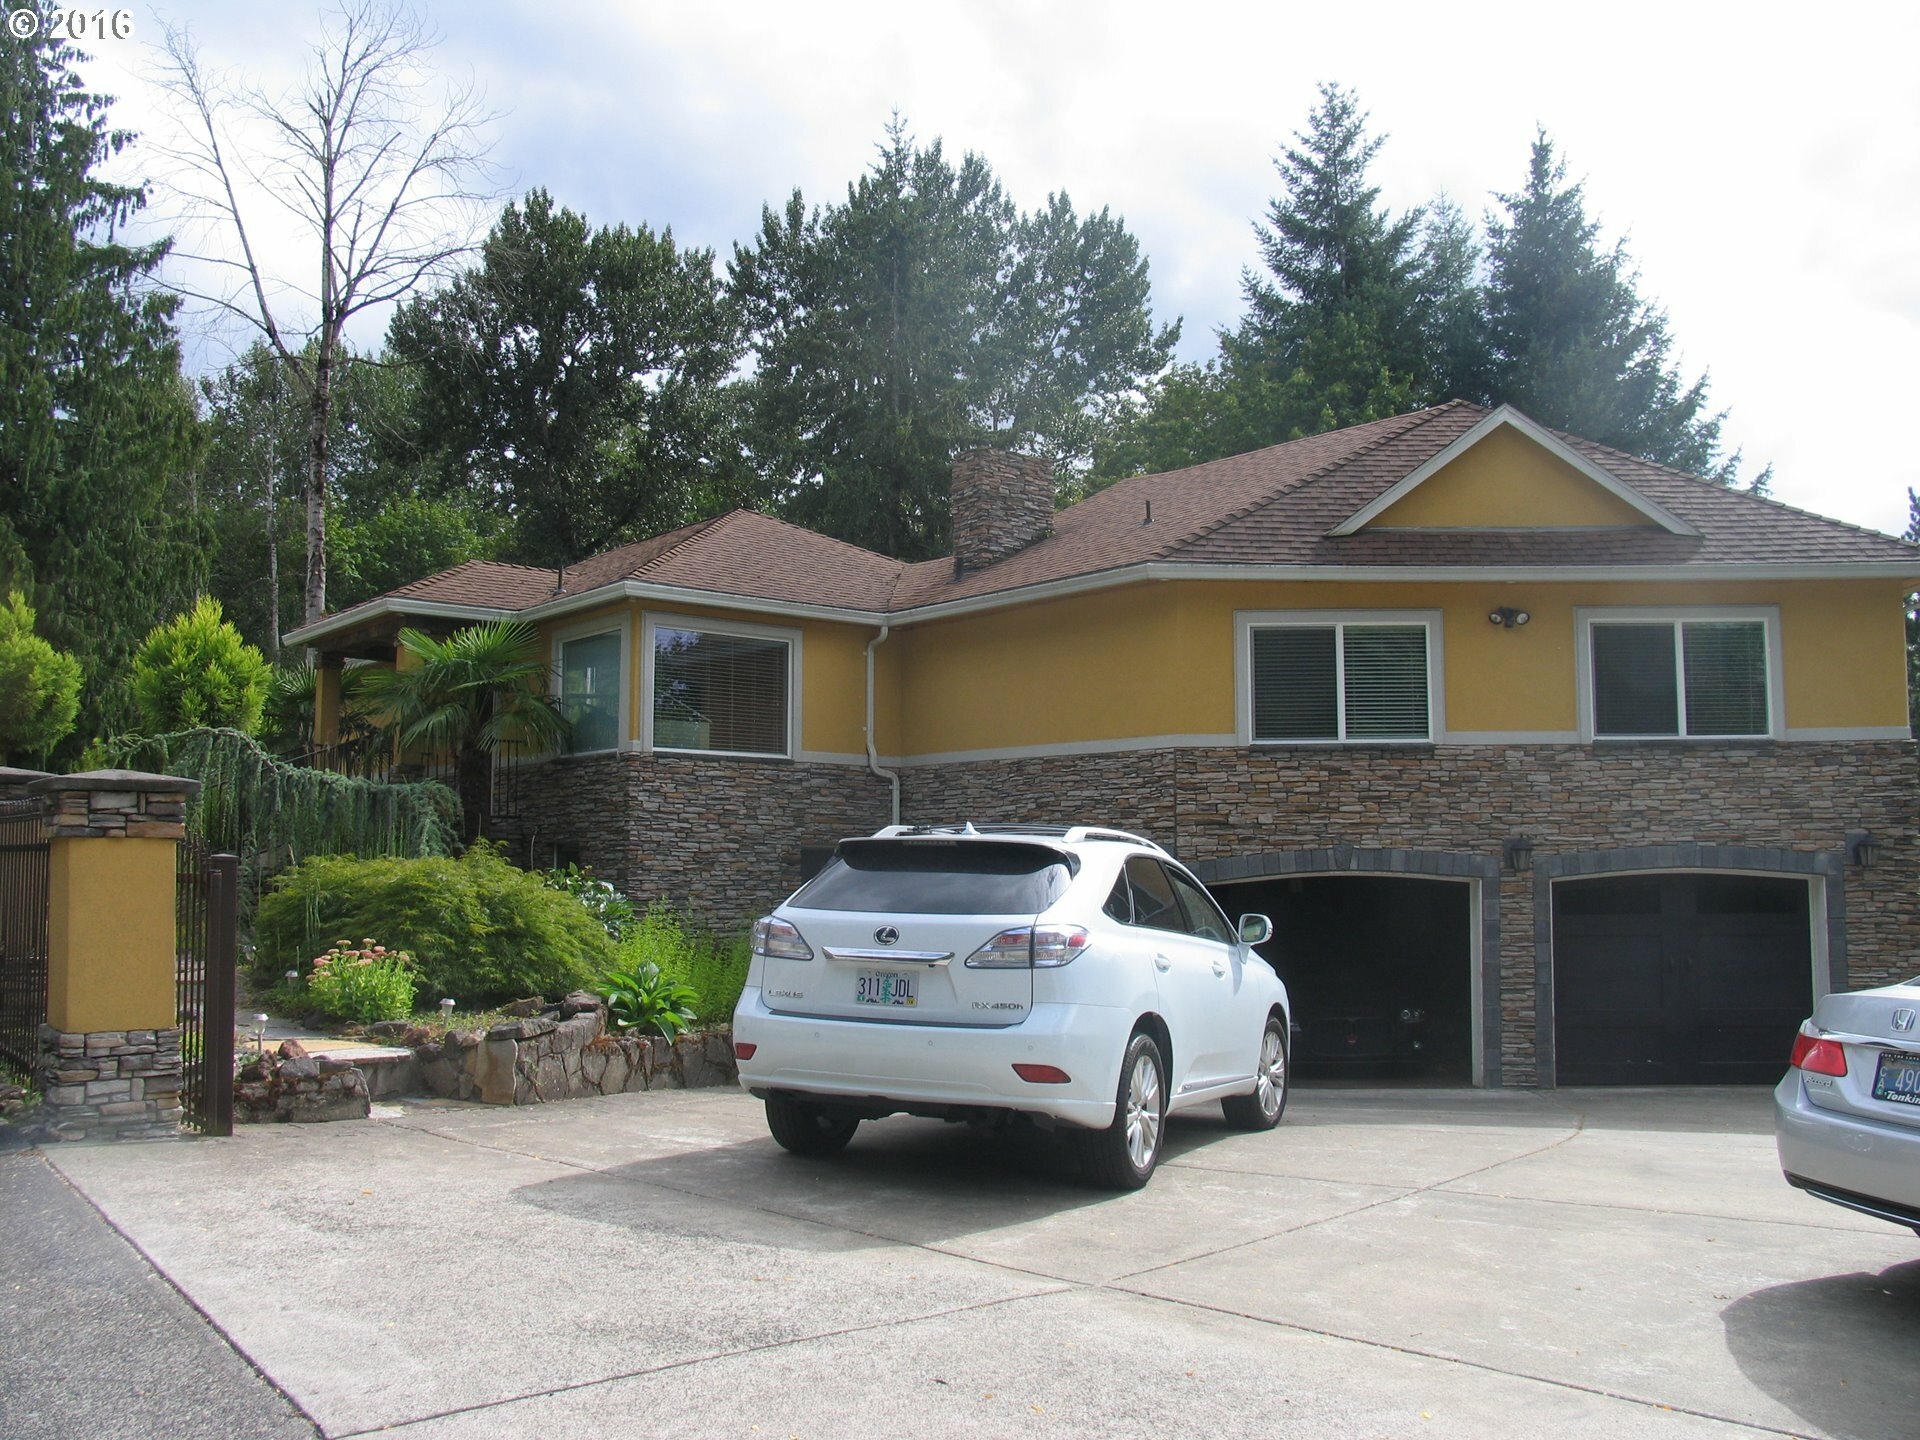 1155 Sw Towle Ave, Gresham, OR - USA (photo 2)